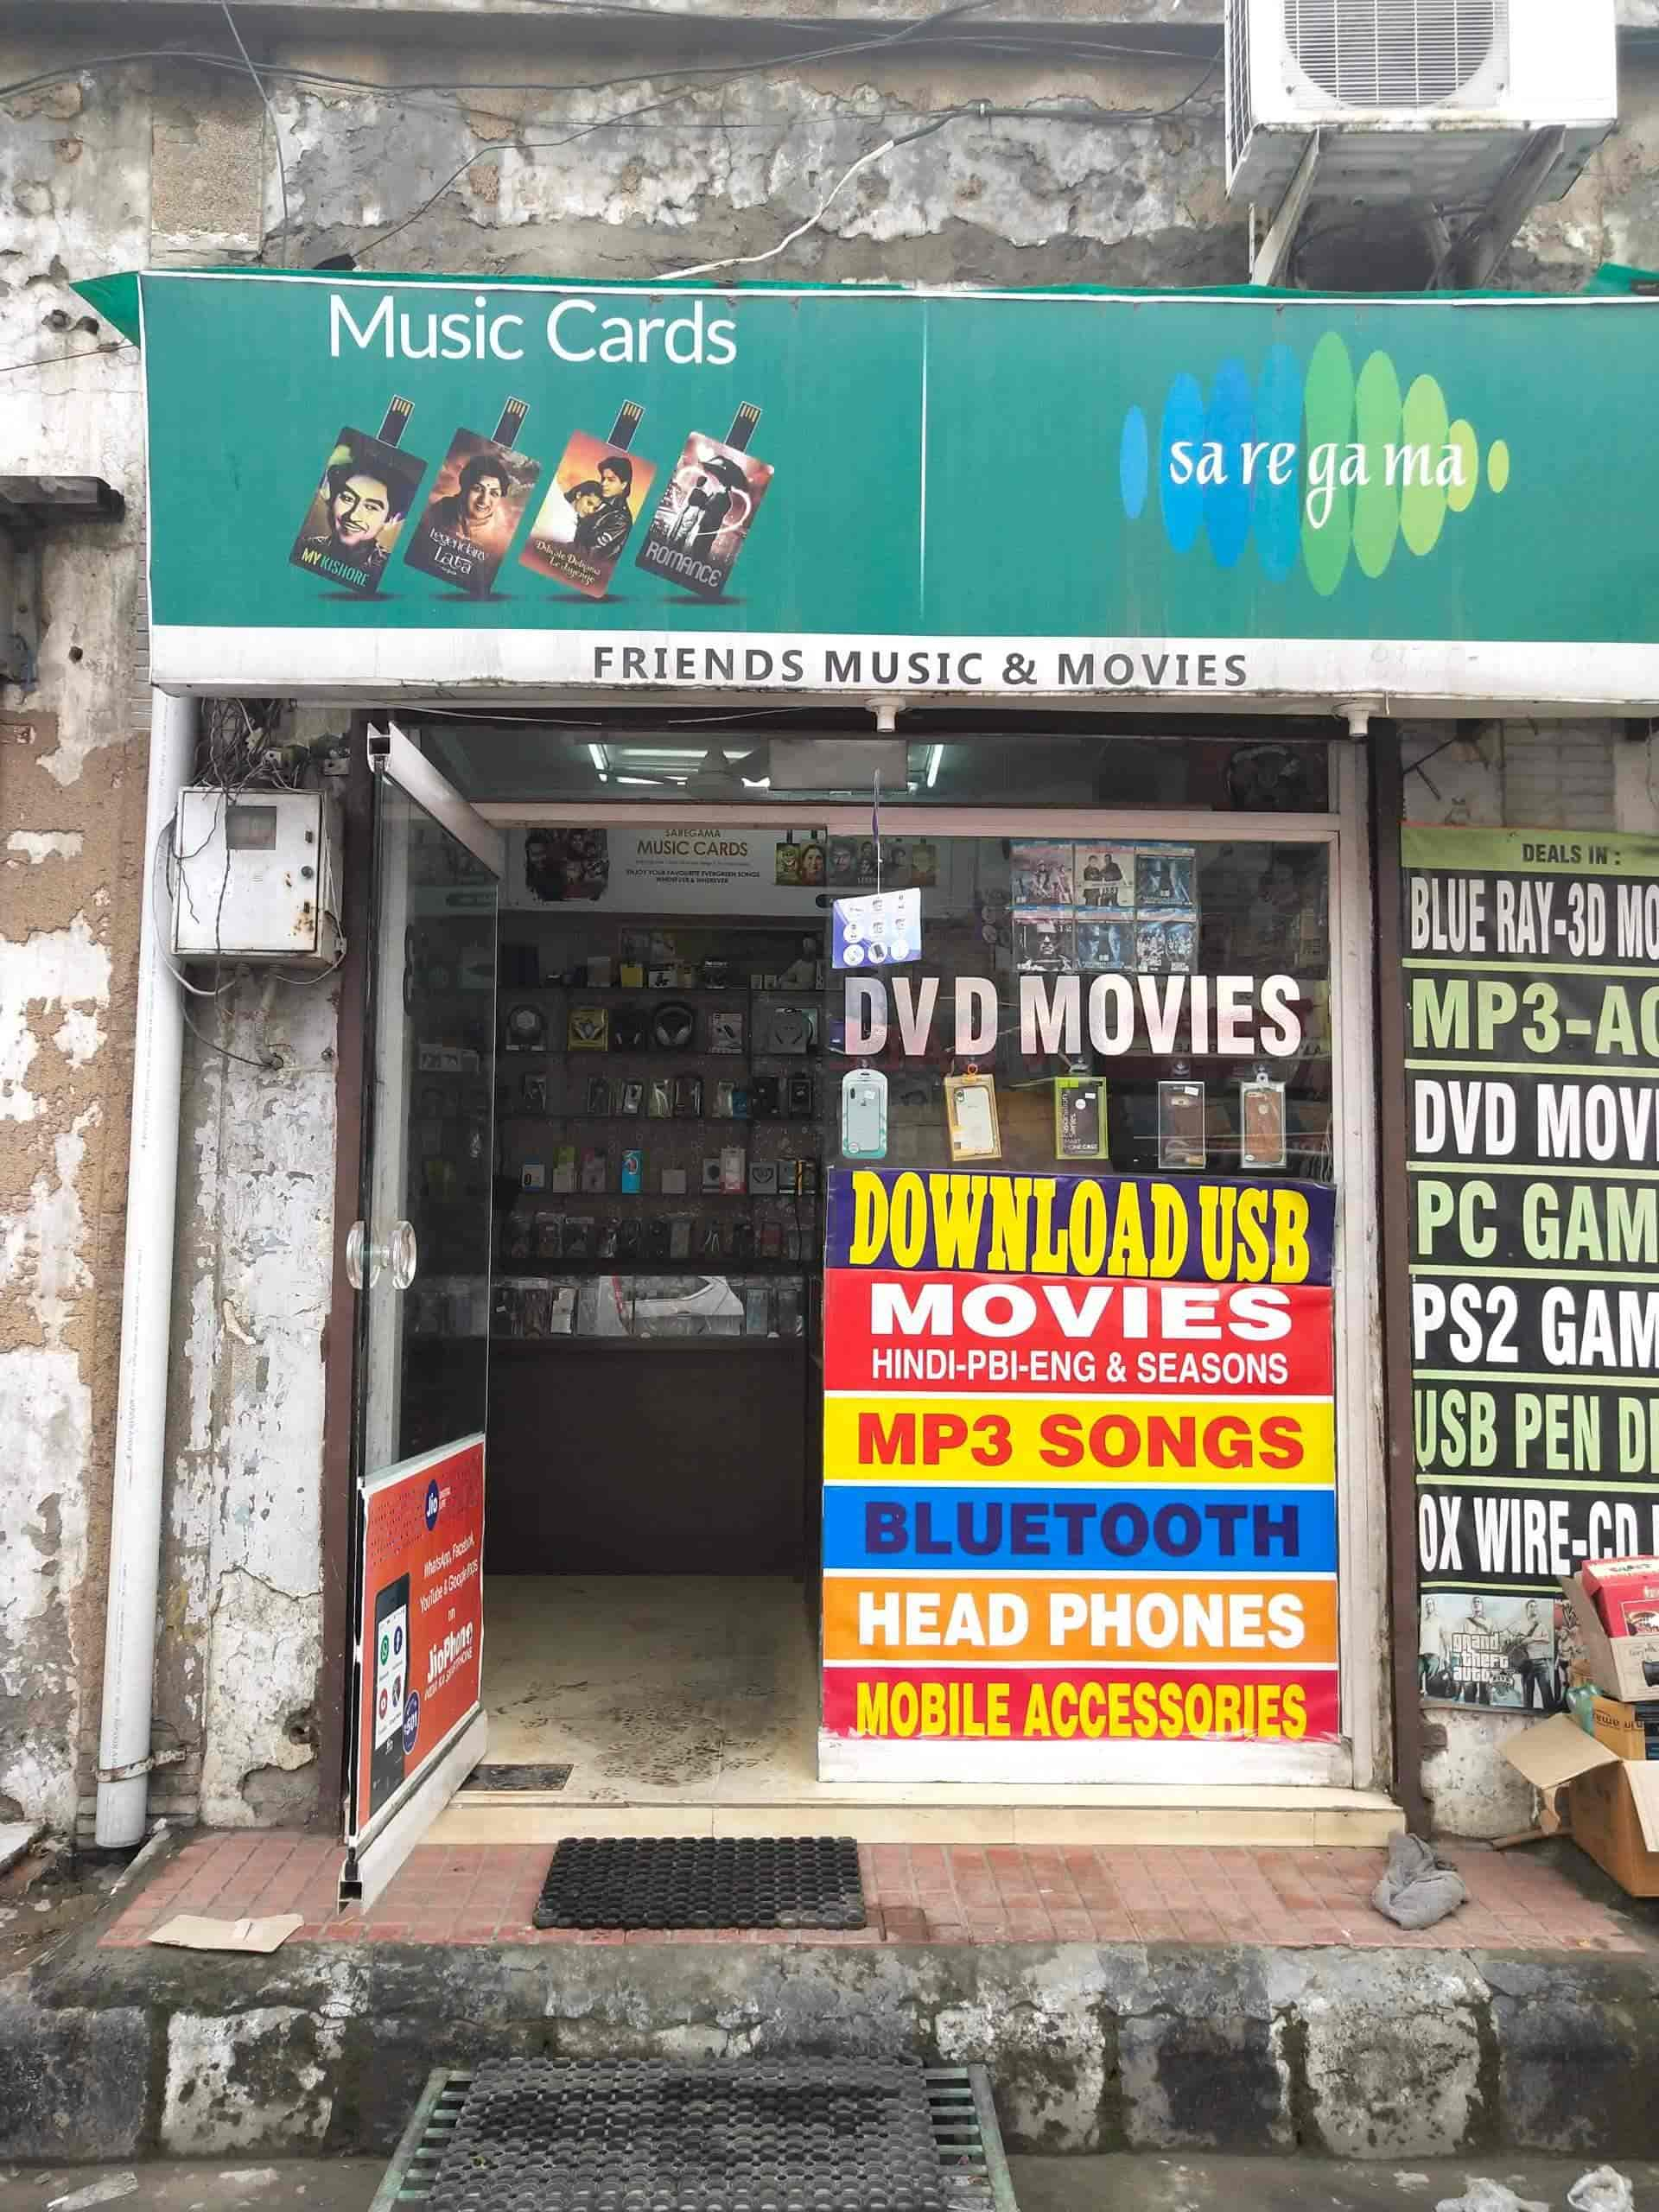 Friends Music And Movies, Model Town - Music Shops in